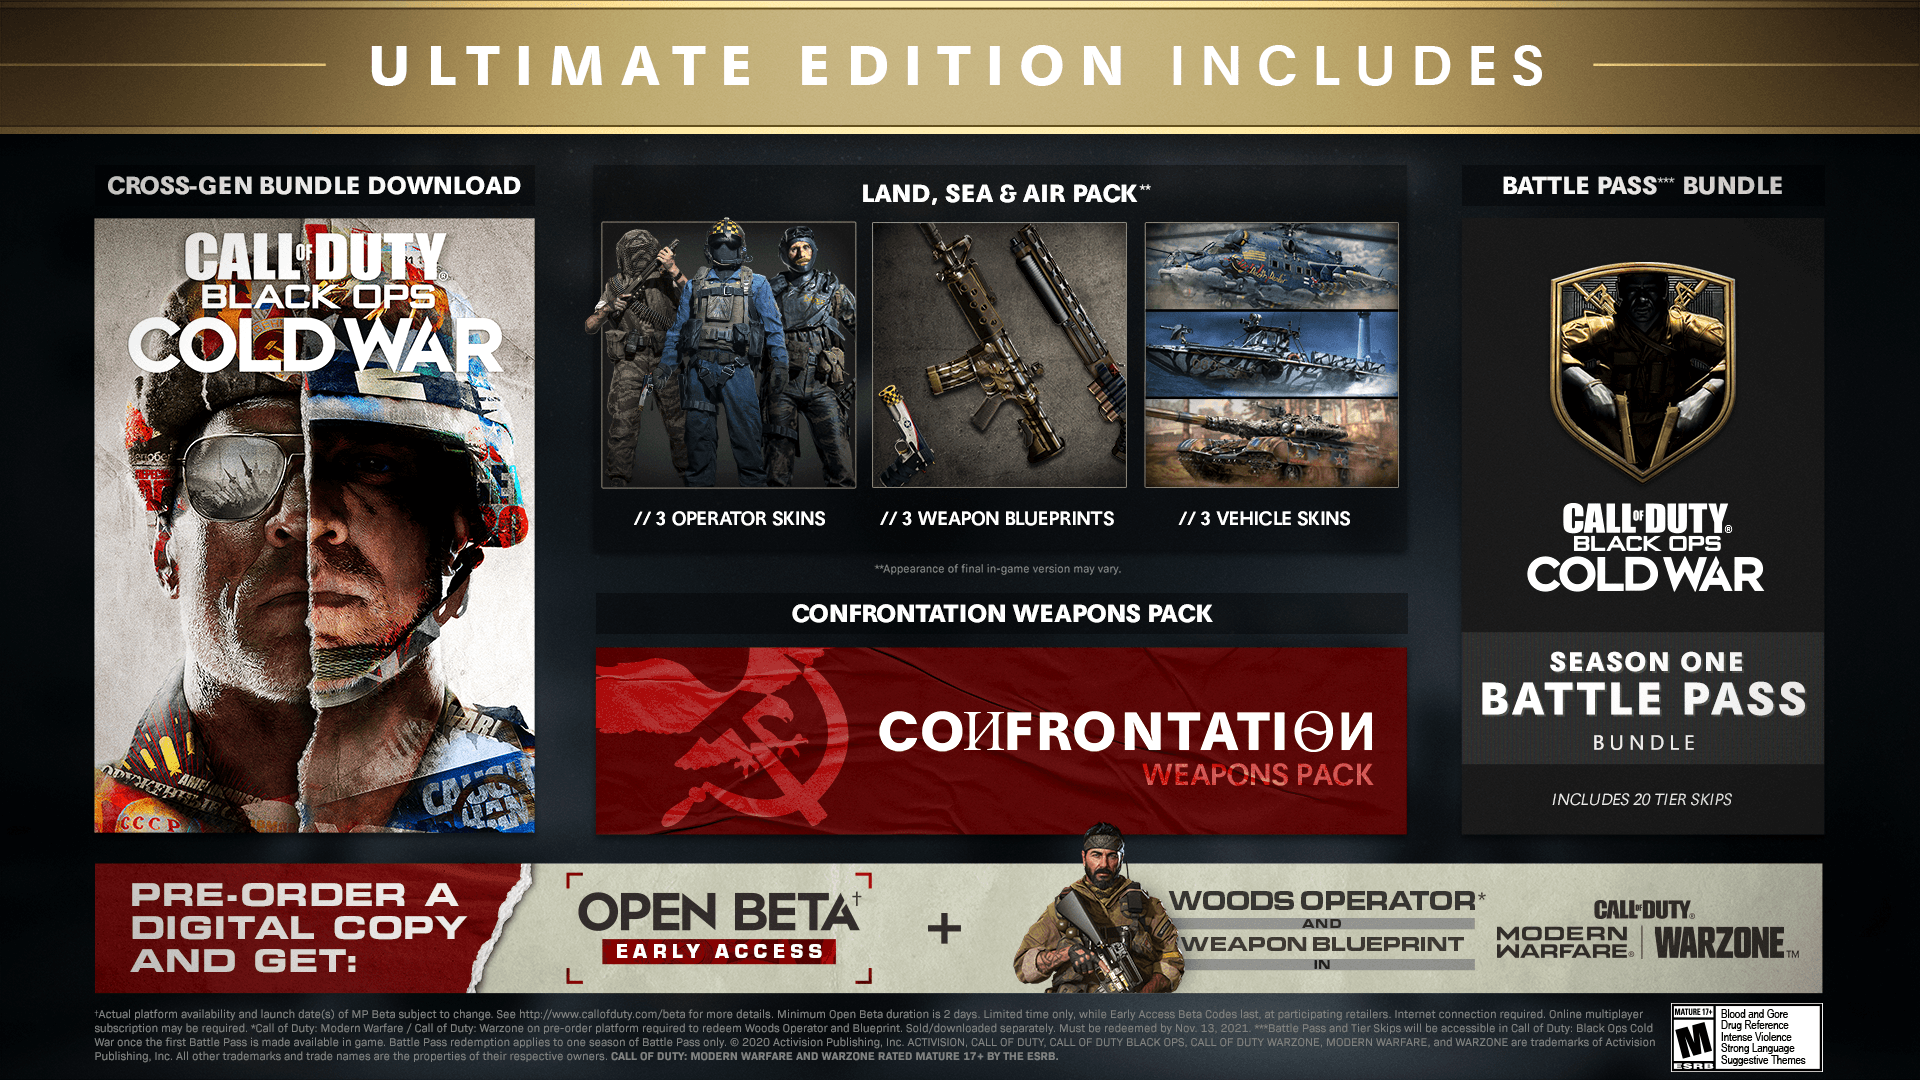 A description of each version of Call of Duty: Black Ops Cold War that's available for preorder.